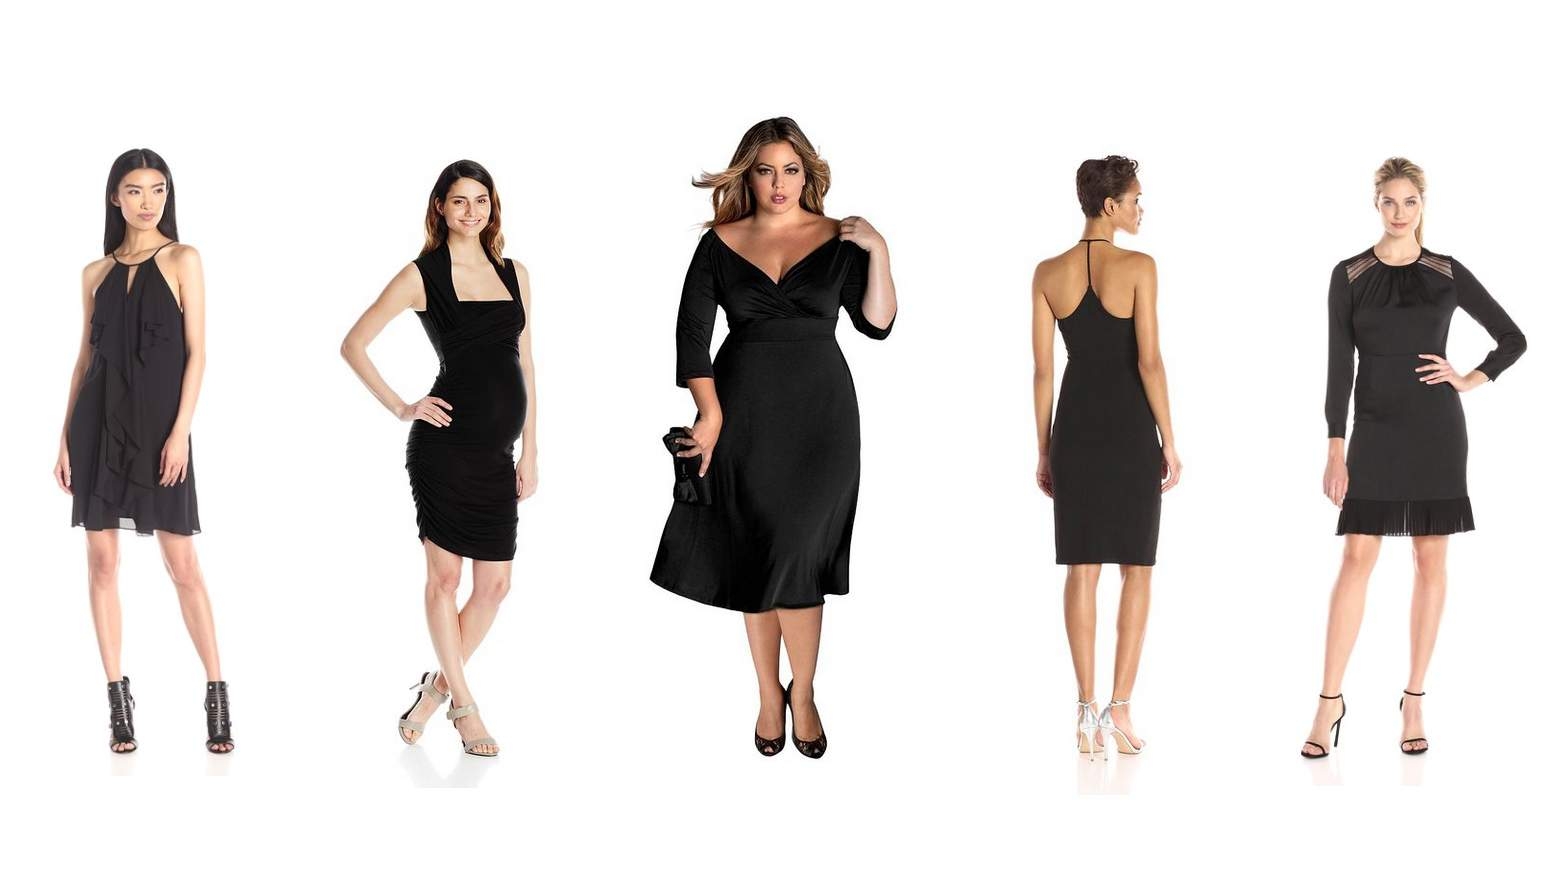 The Latest Fashions For Those Body Sizes